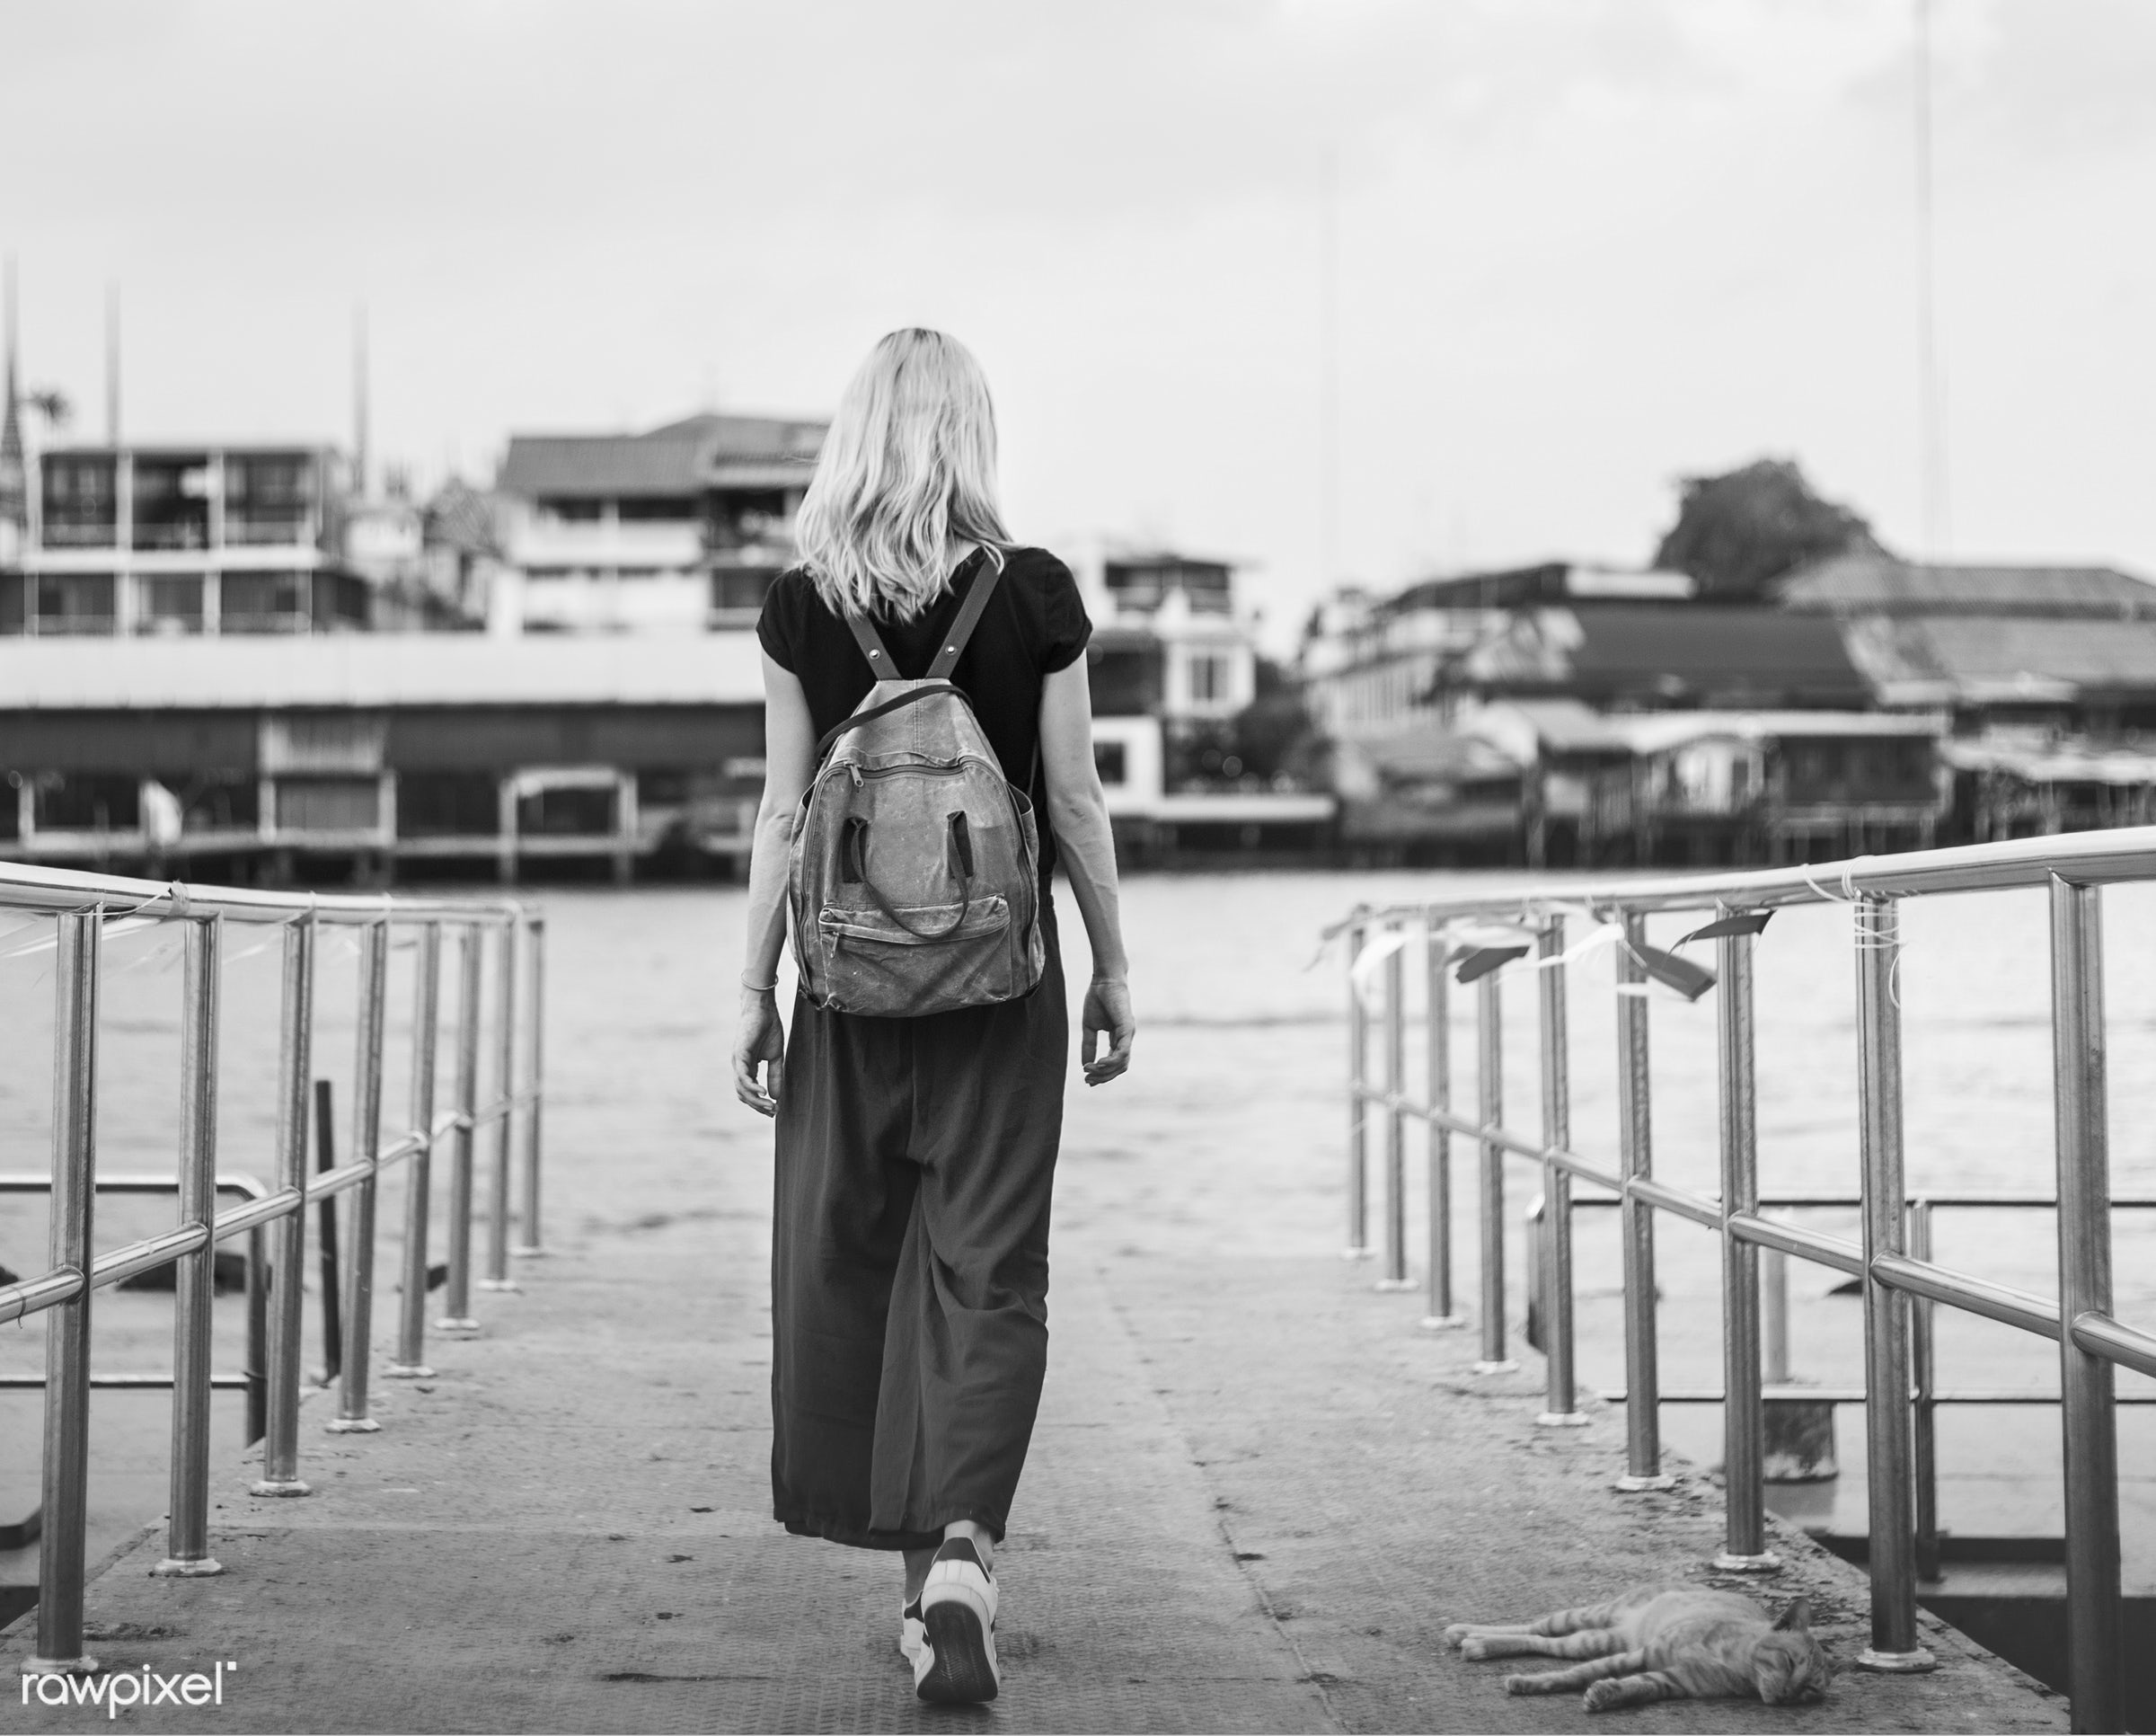 alone, back, bag, blonde, dock, explore, female, one, outdoors, people, person, river, riverside, solo, sweden, swedish,...